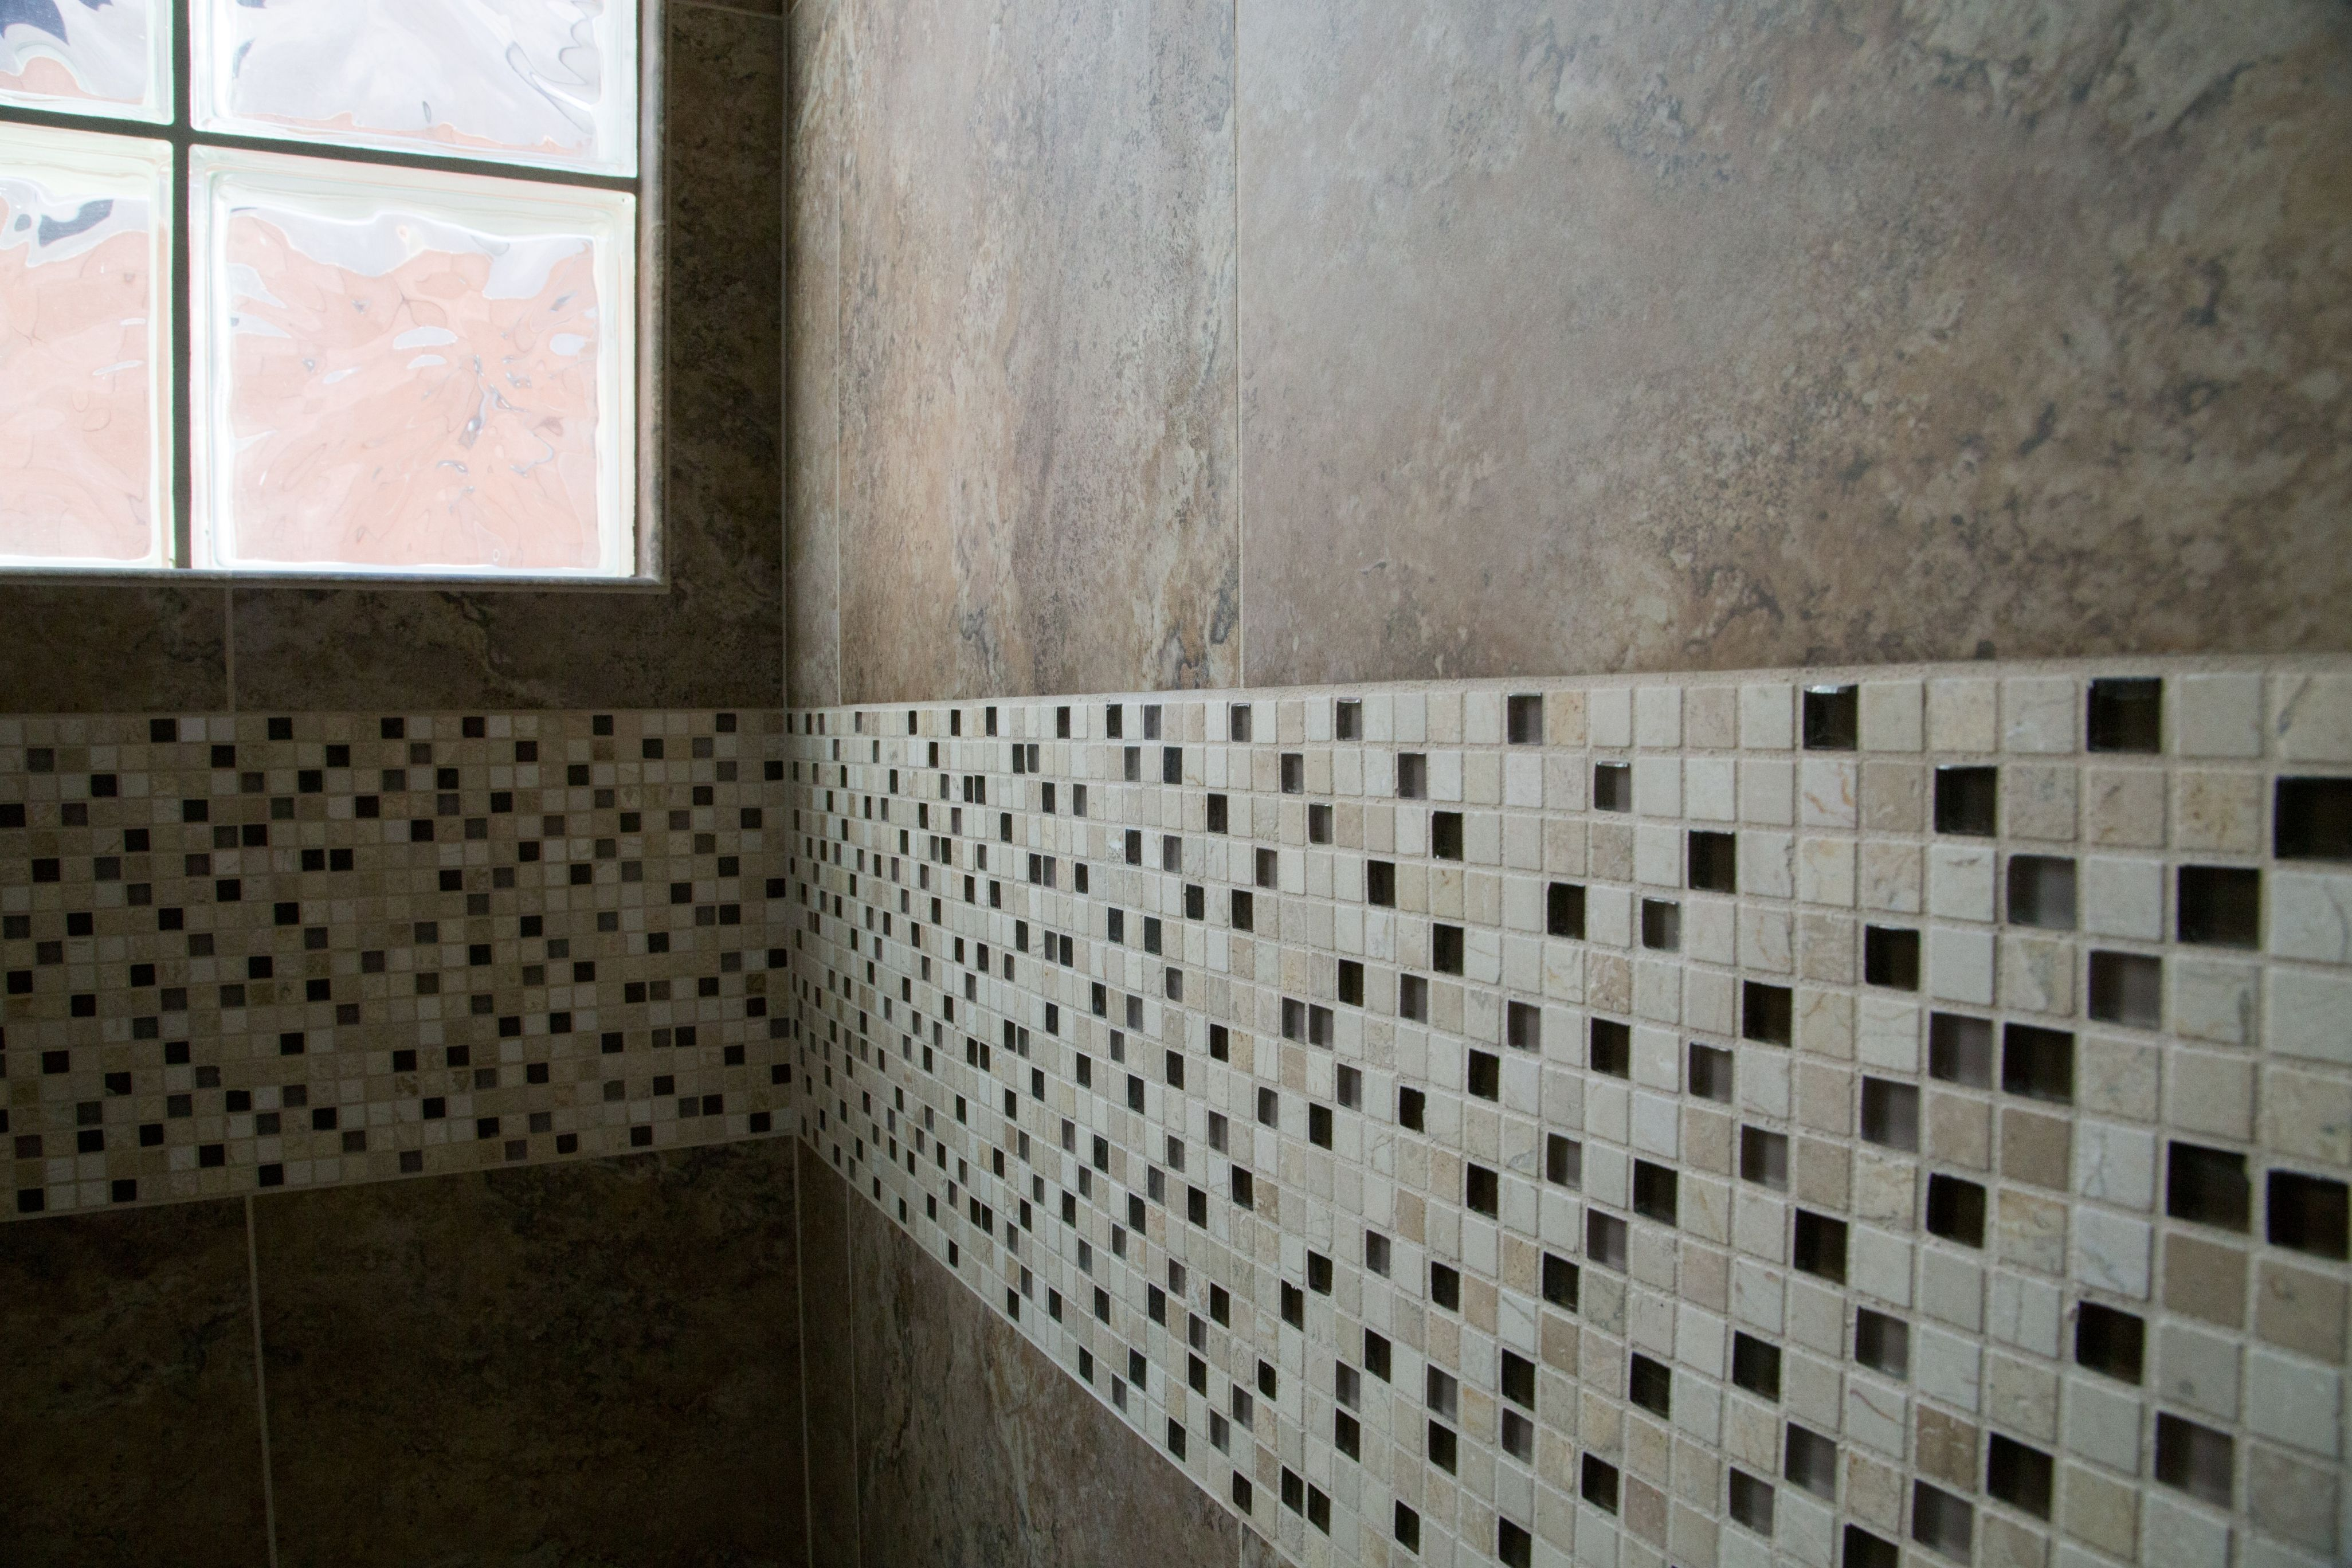 A Mosaic Deco Band Is A Great Way To Add Color To Your Shower Or Tub Surround Twdaz Com Twdaz Bathroomdesign Des Bathrooms Remodel Remodel Dream Bathrooms [ jpg ]